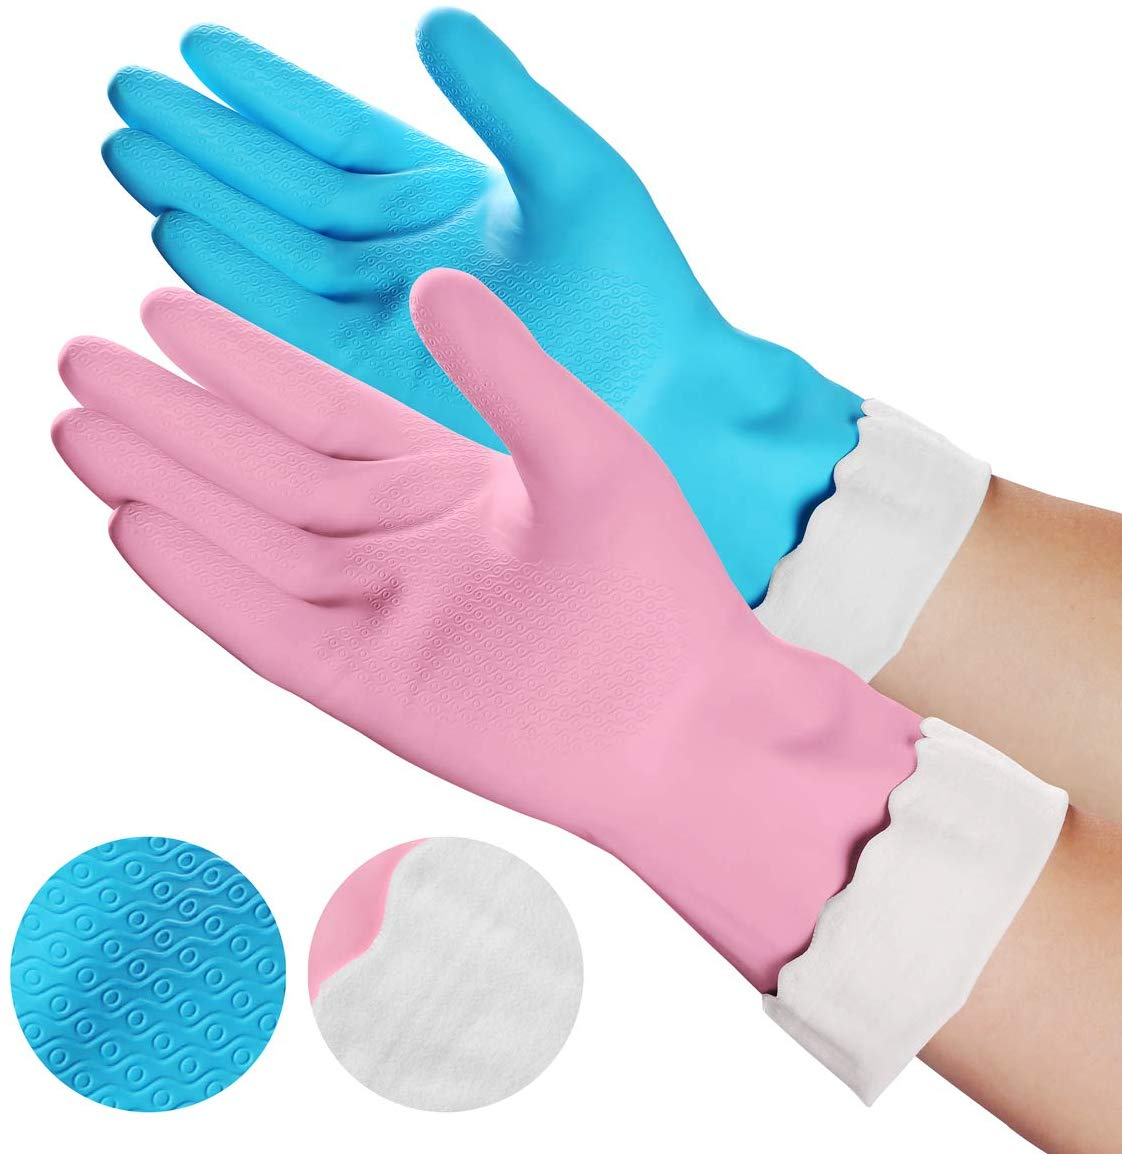 2 Pairs Cleaning Gloves, Reusable Waterproof Dishwashing Gloves Cotton Lining, Non-Slip Household Gloves for Washing Kitchen, Dishes, Bathroom, Car and More (Medium)